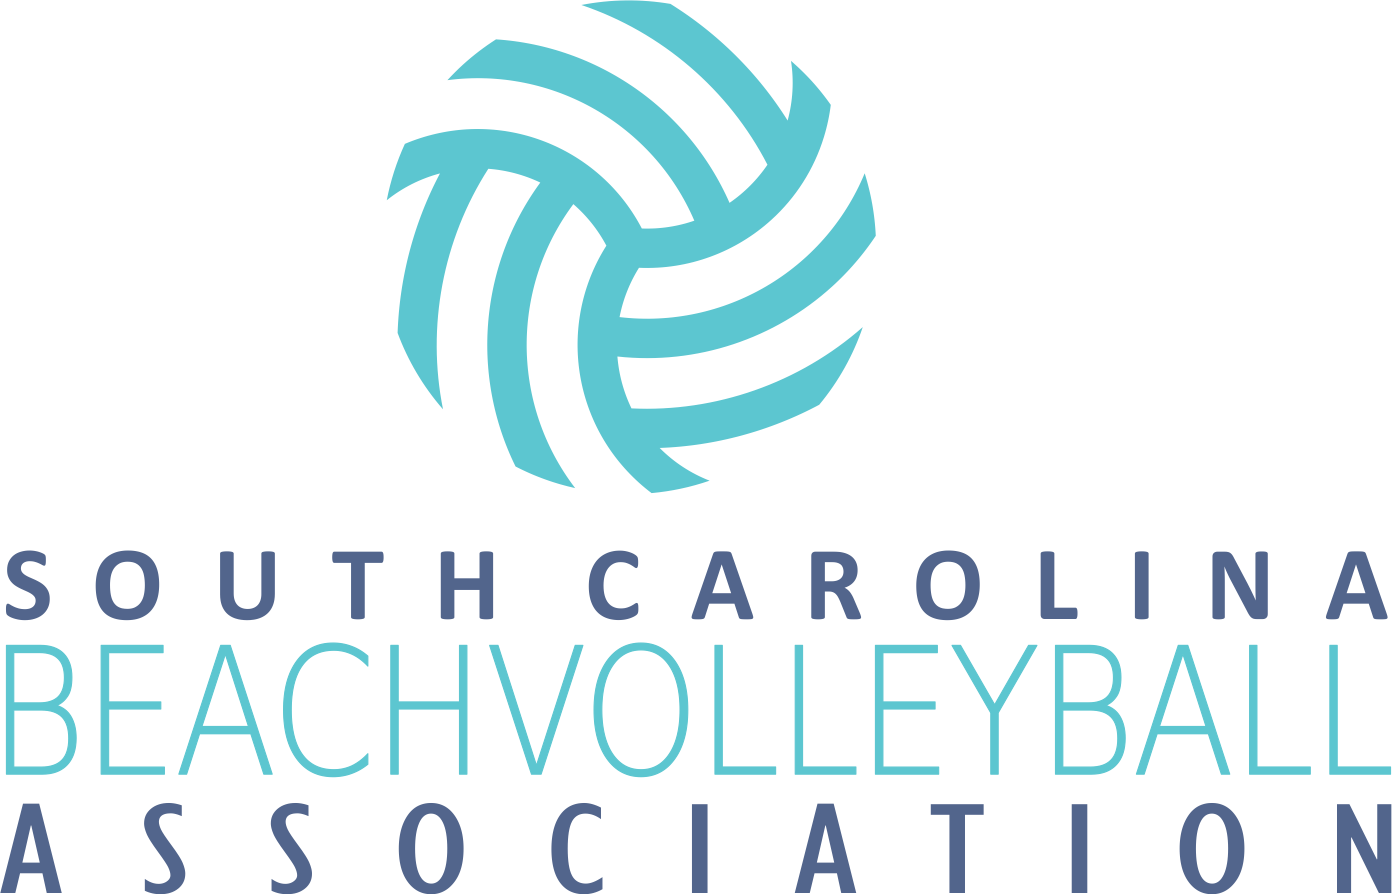 South Carolina Beach Volleyball Association